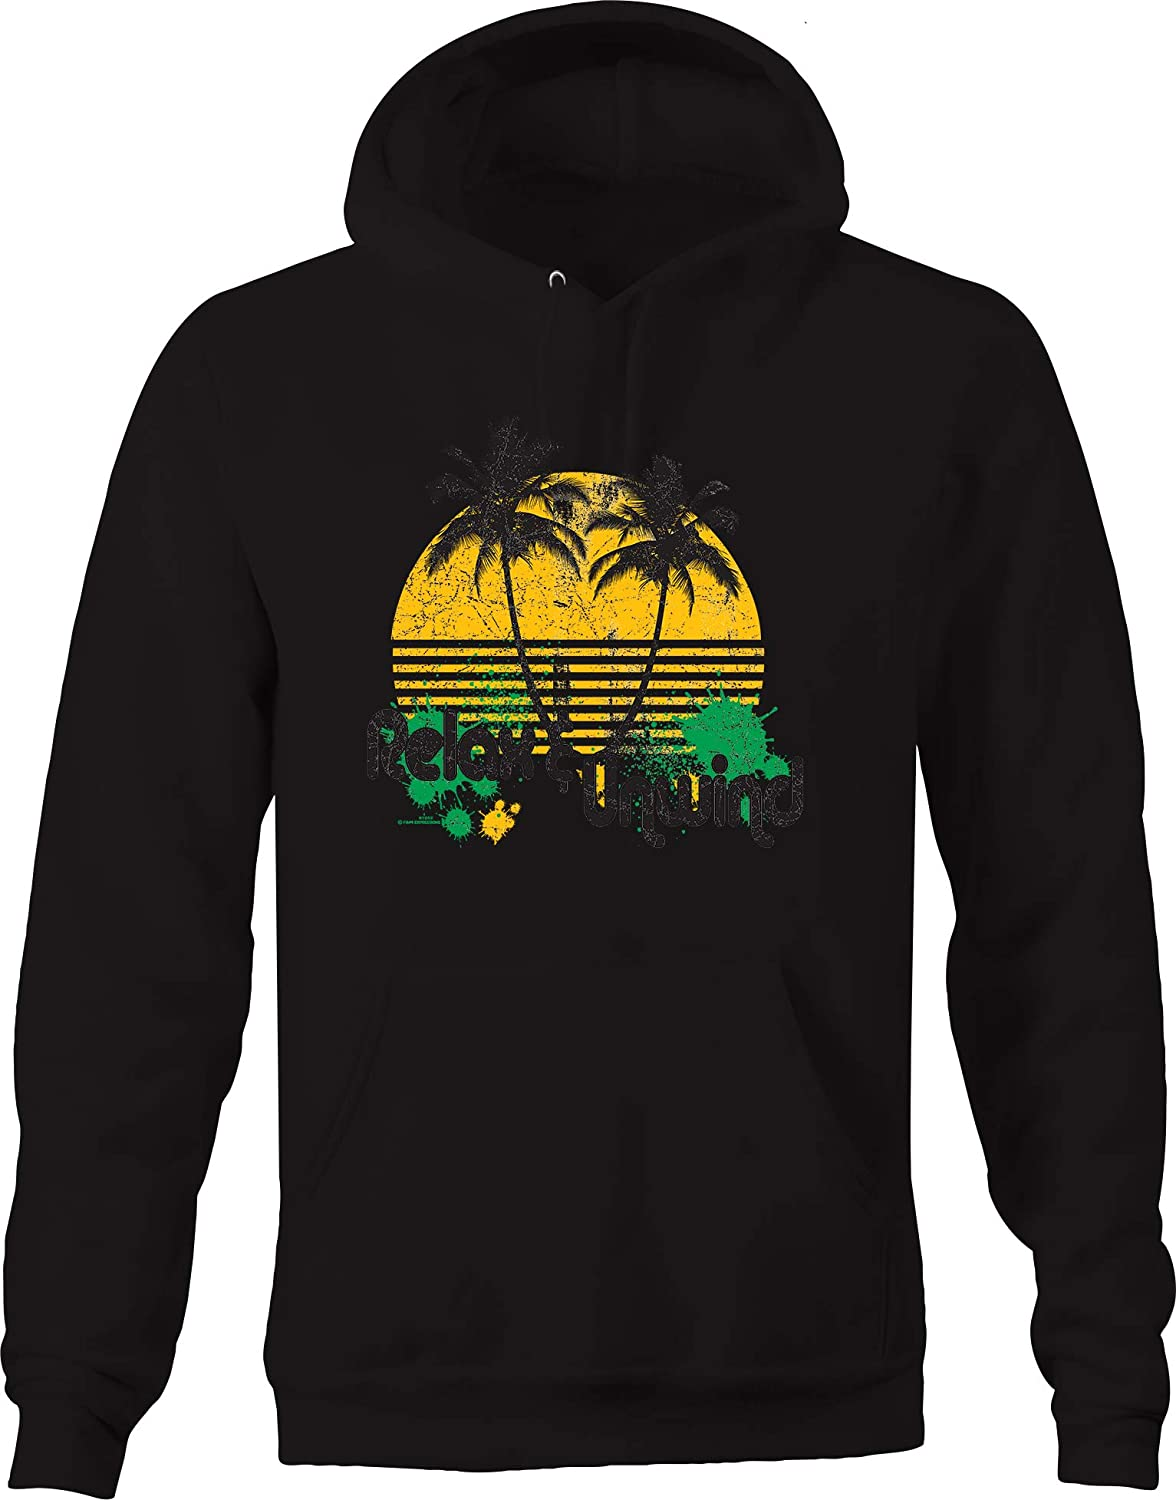 Relax and Unwind Distressed Palm Tree Sunset Splatter Paint Chill Hoodies for Men